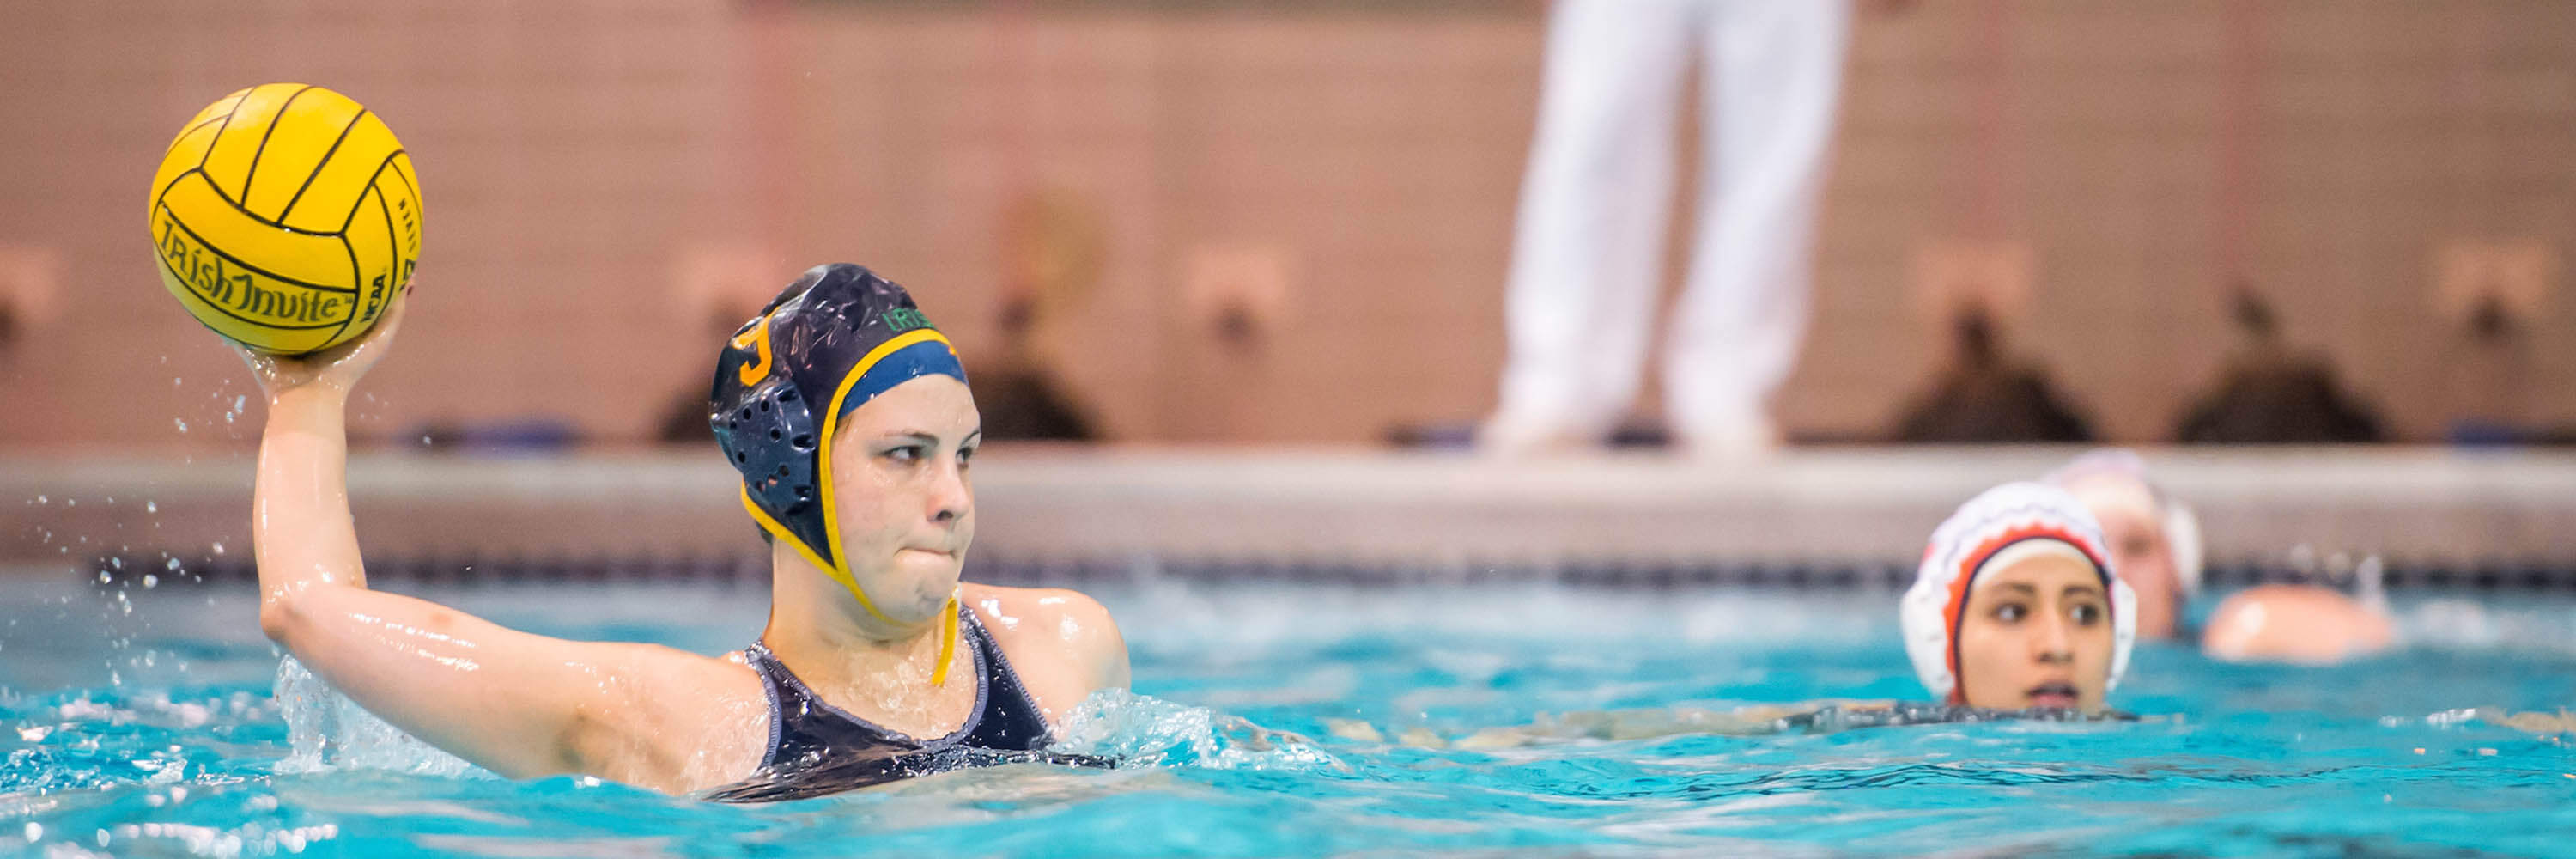 Notre Dame Recsports Club Sports Womens Water Polo Featured Image